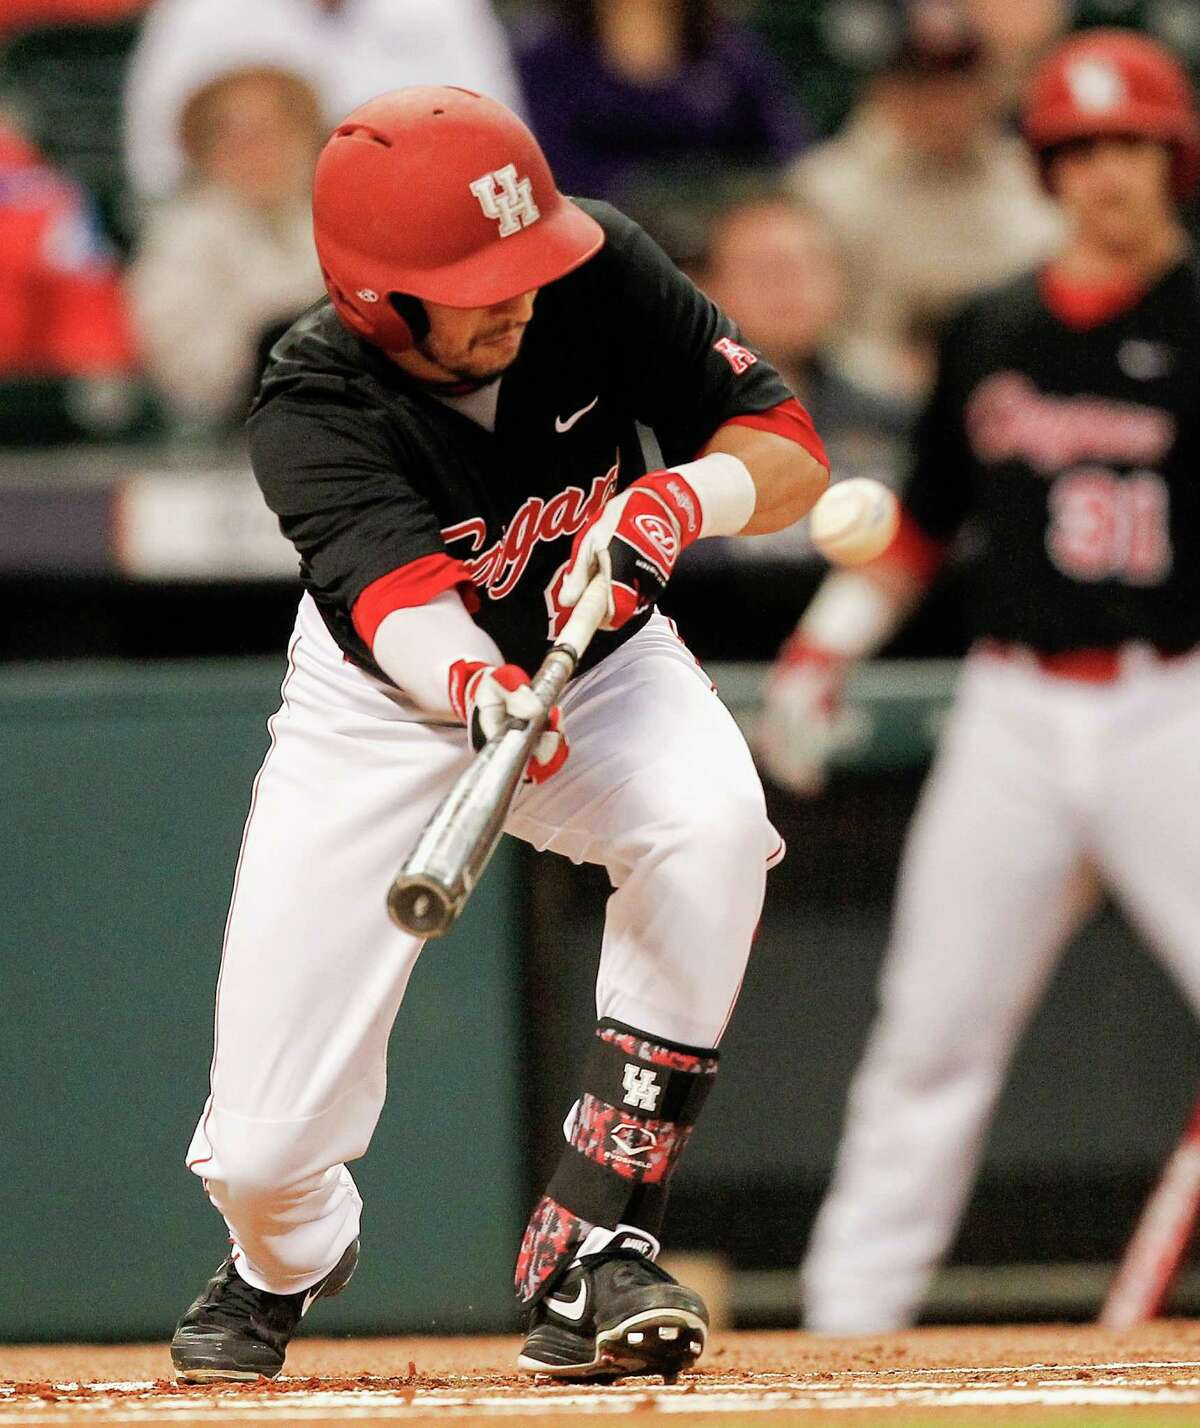 Houston infielder Josh Vidales (8) lays down a bunt against the LSU Tigers during the College Classic on March 6, 2015 at Minute Maid Park in Houston, Texas.